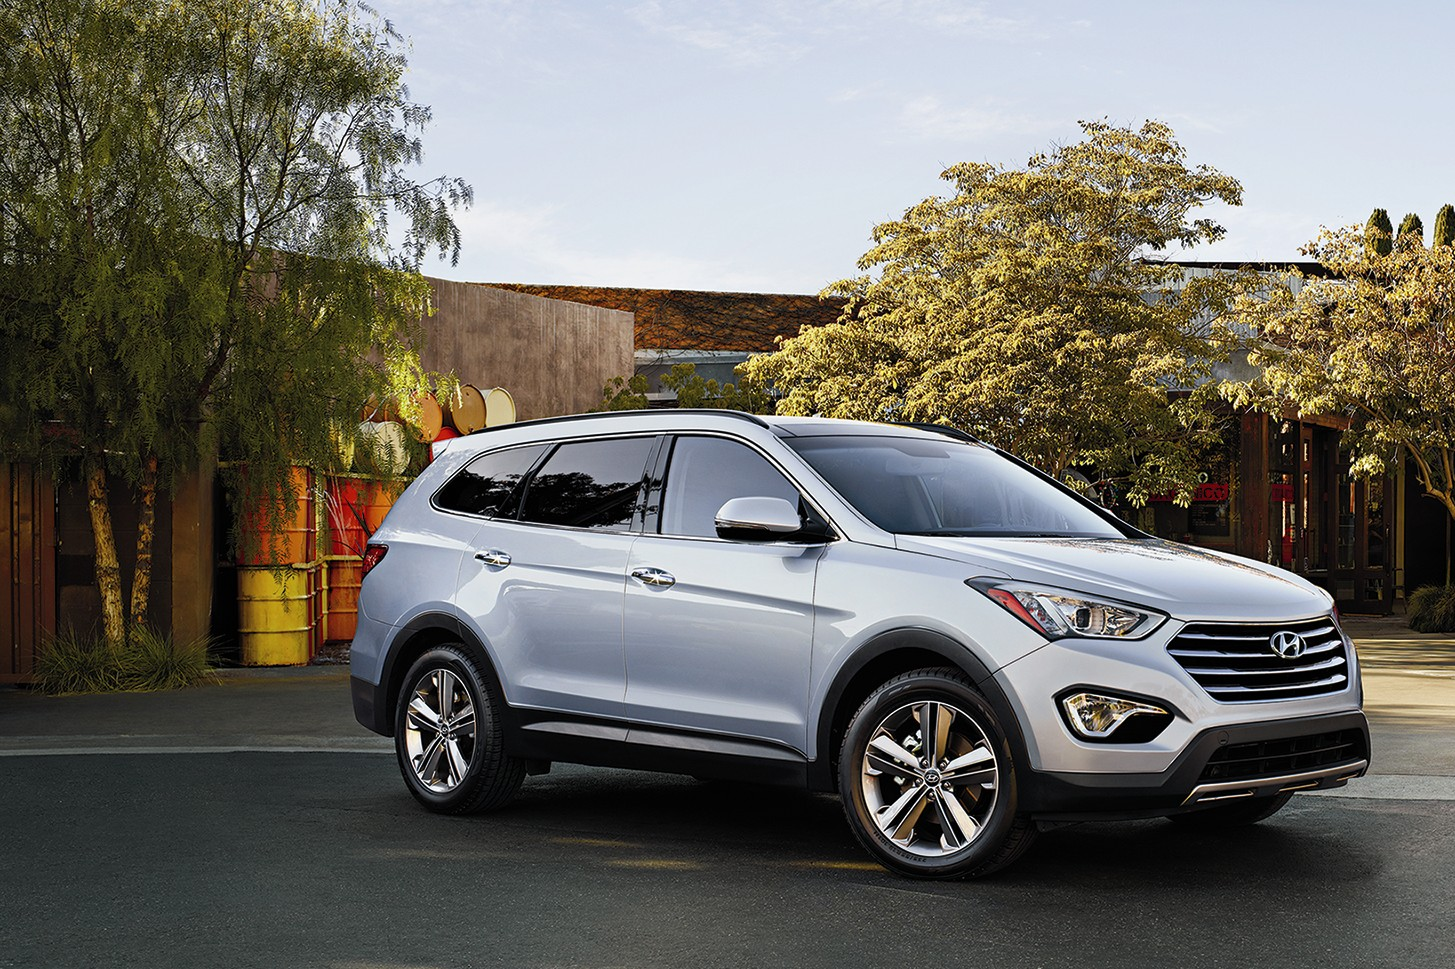 new and used hyundai santa fe prices photos reviews specs the car connection. Black Bedroom Furniture Sets. Home Design Ideas